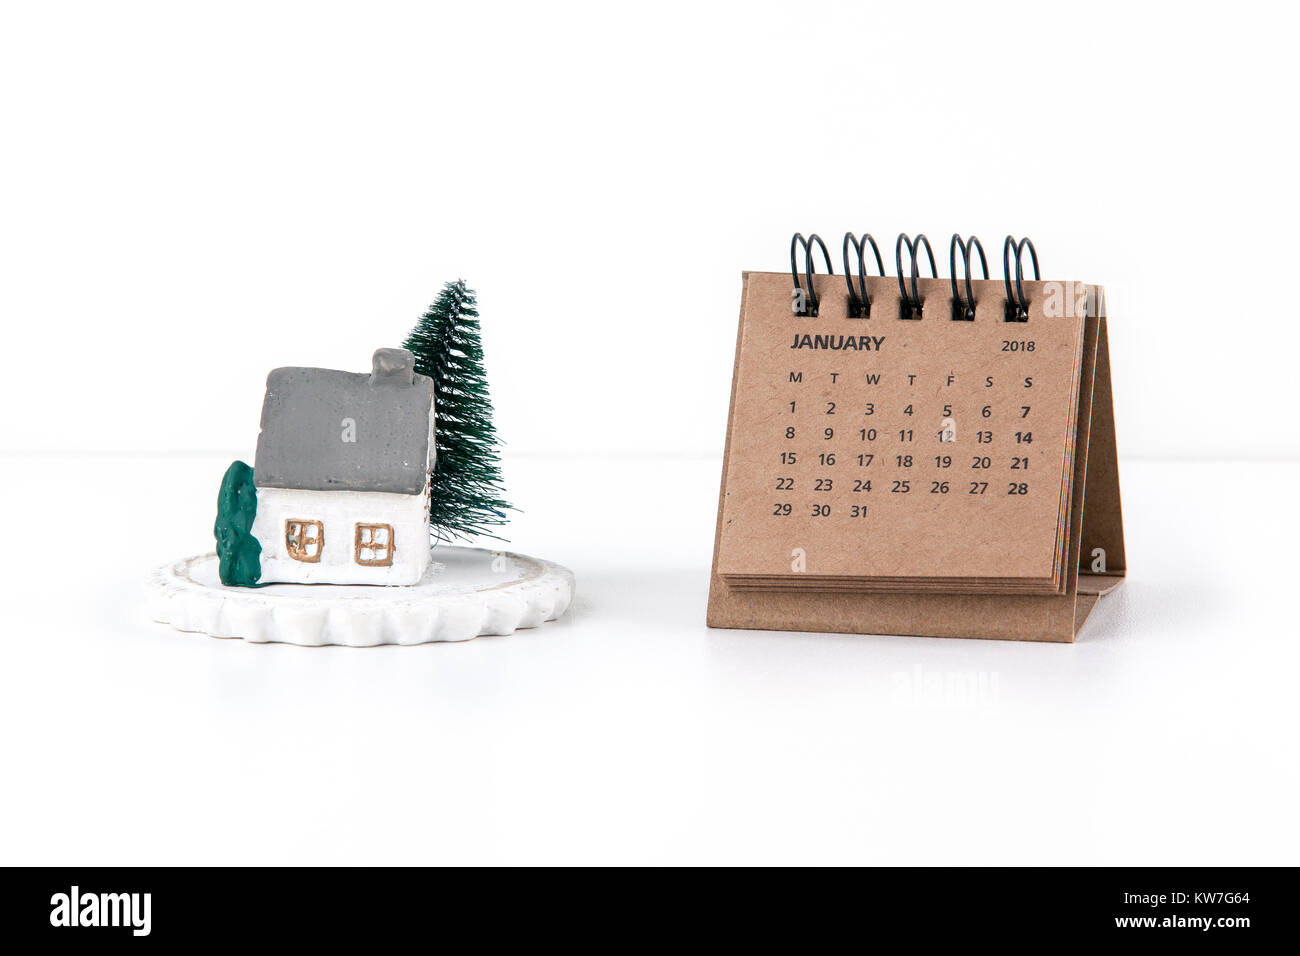 Little house model and tree on white background with calendar 2018 and month of January - Stock Image